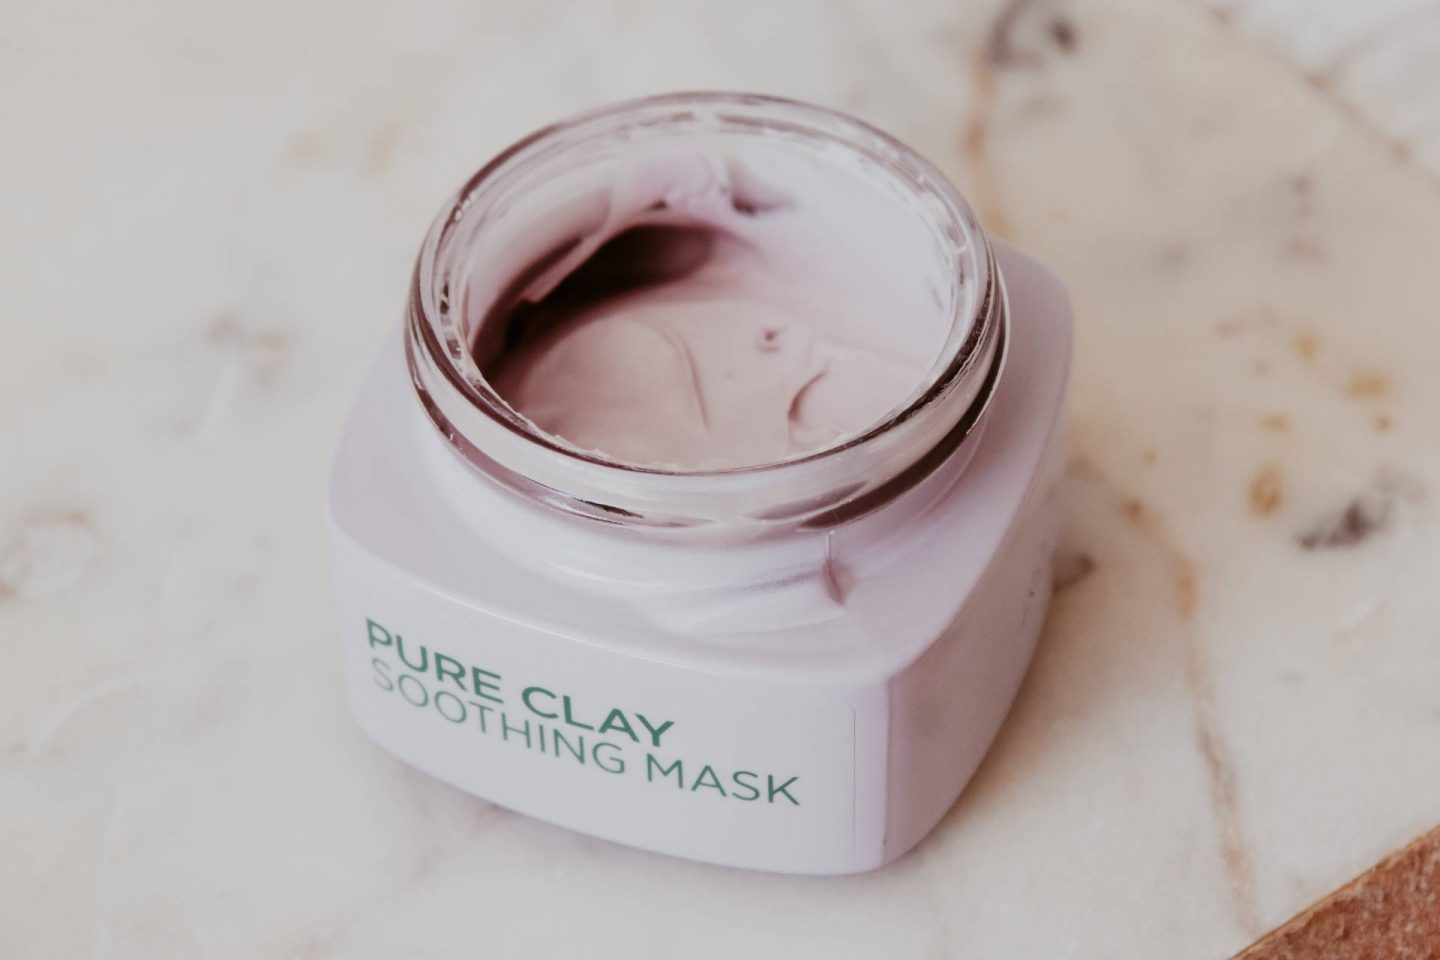 L'Oreal pure clay masque